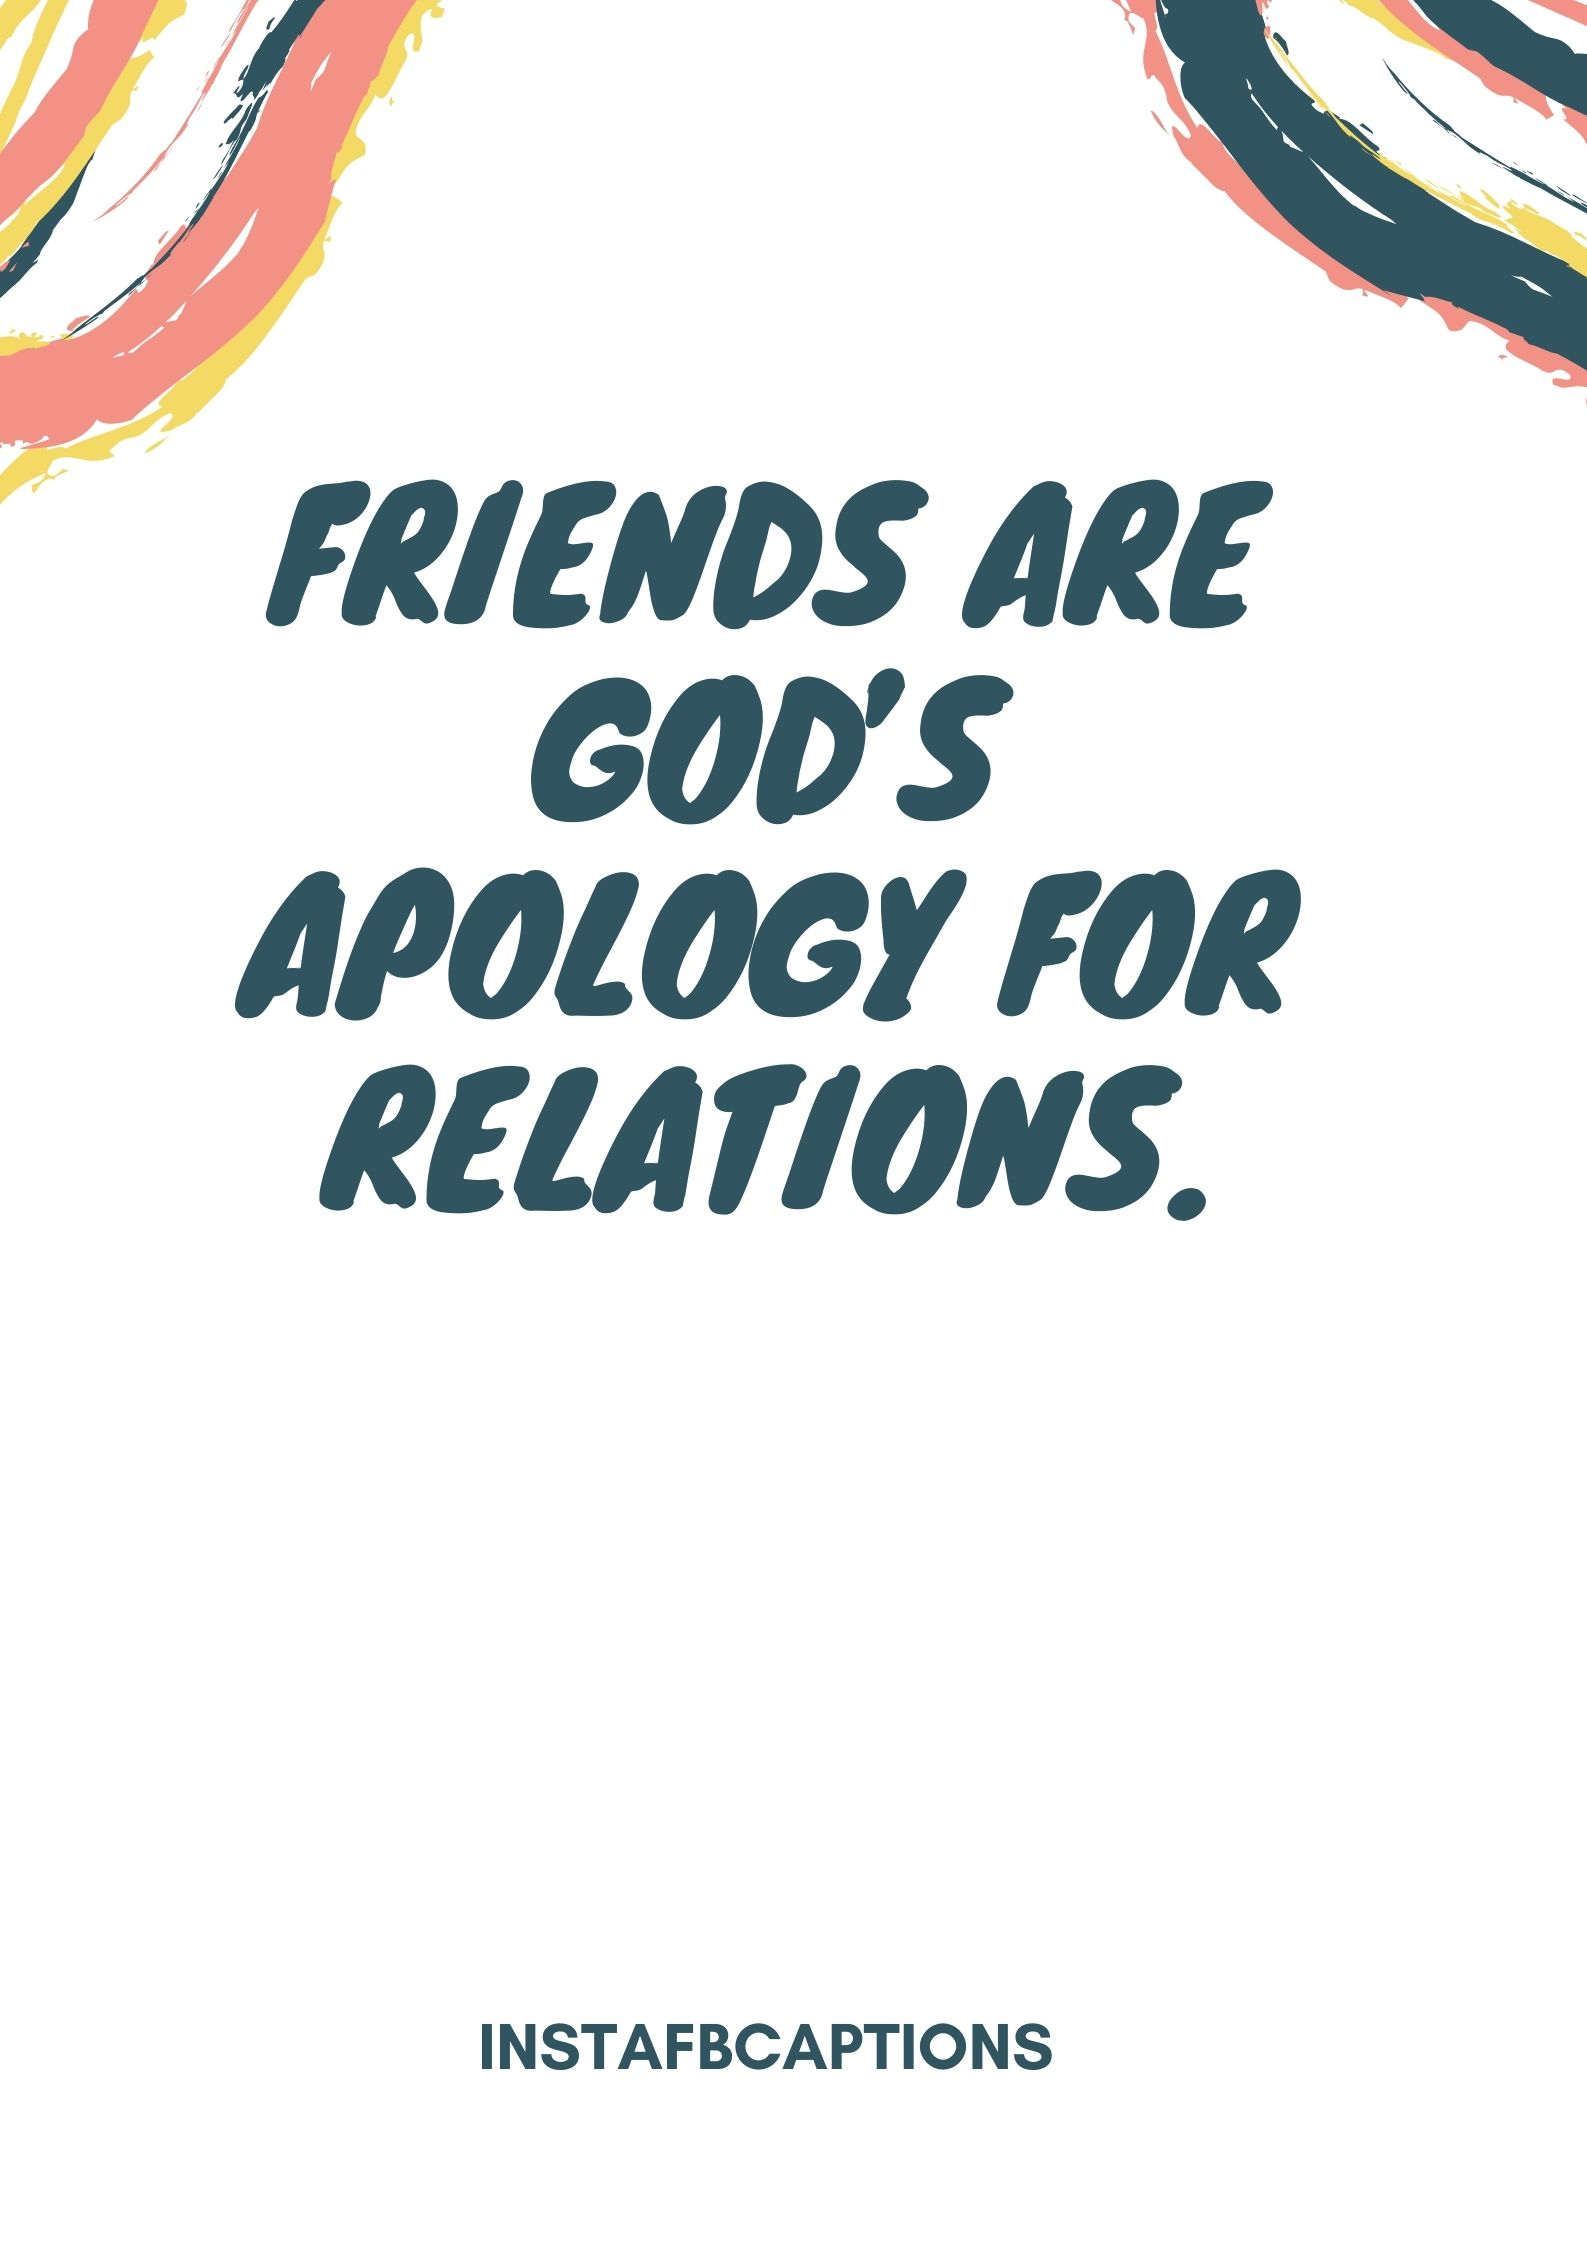 Funny Apology Captions  - Funny apology captions - 100+ Sorry Captions & Quotes for Apology in 2021